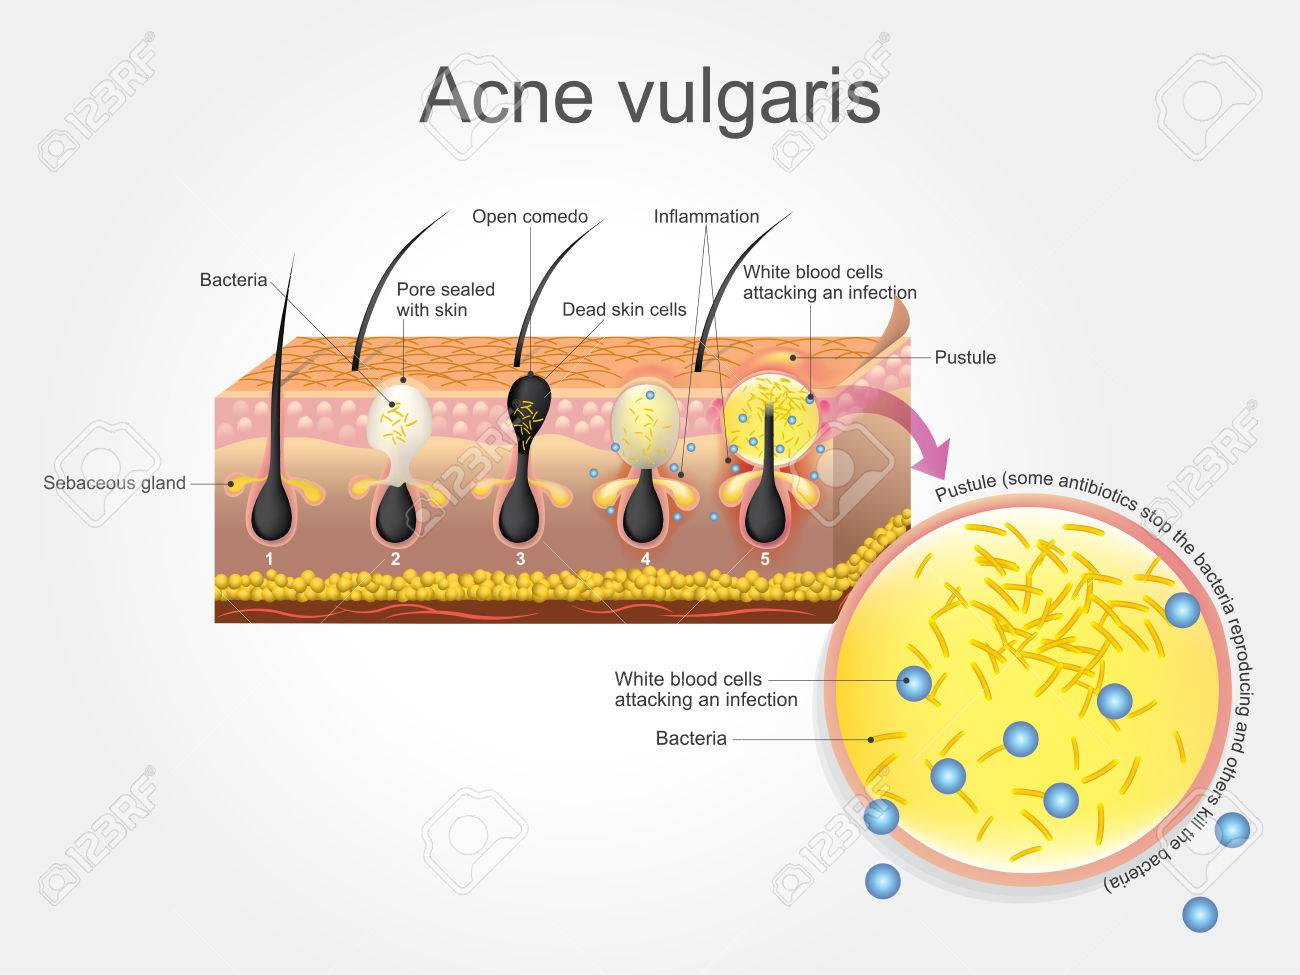 hight resolution of acne vulgaris is a long term skin disease that occurs when hair follicles become clogged